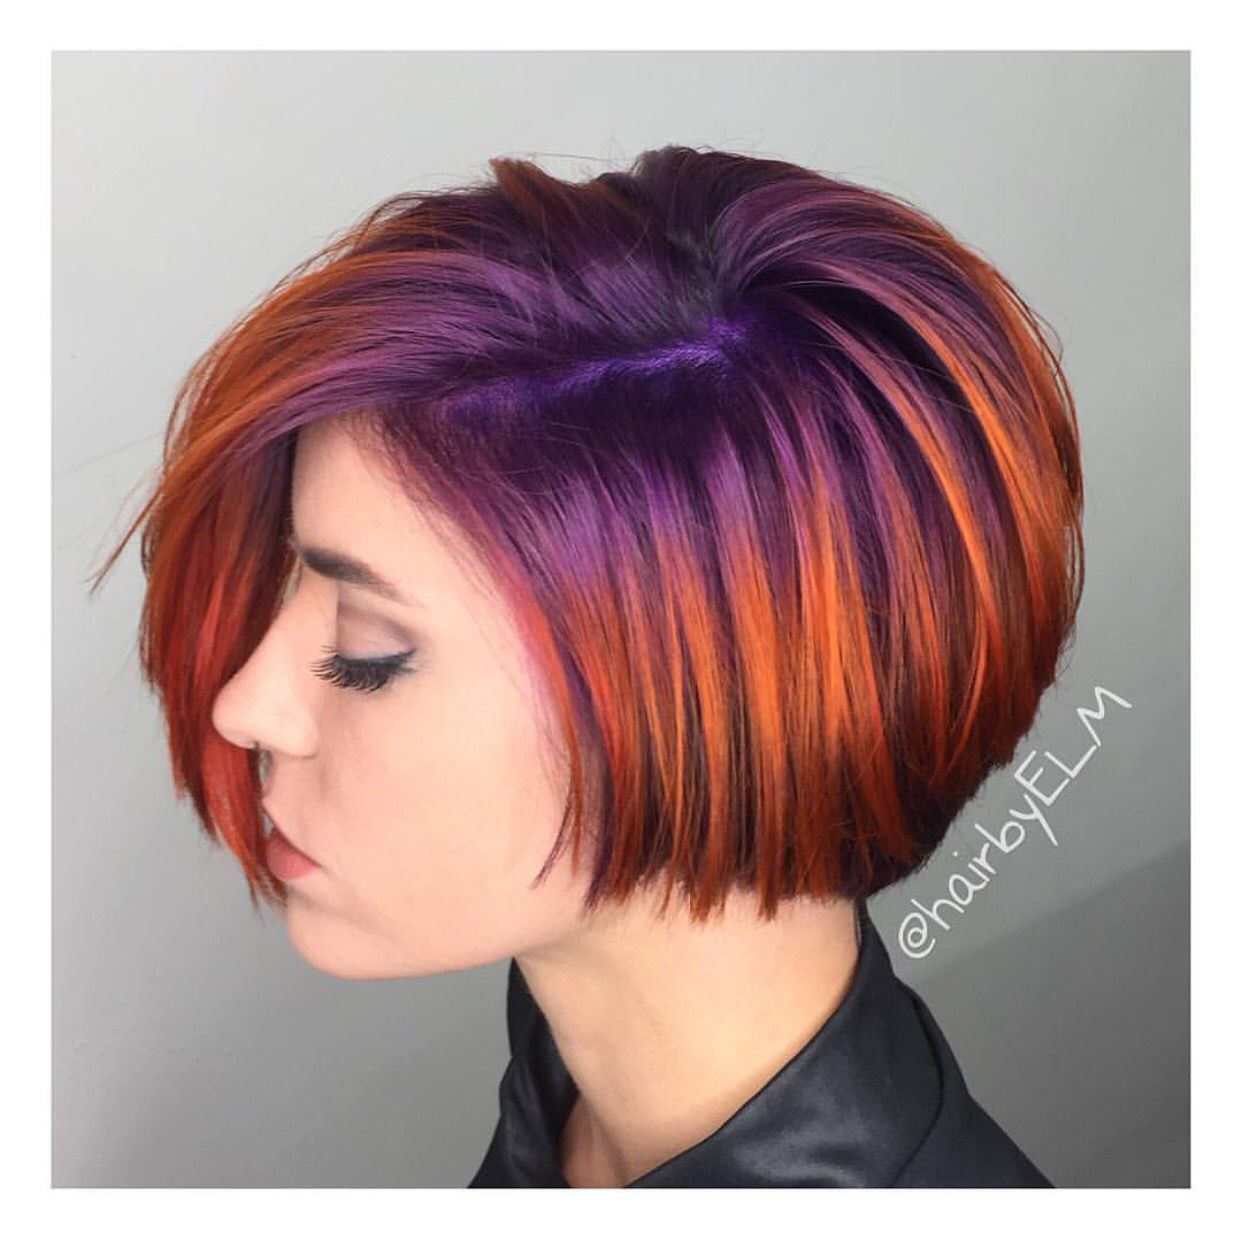 We Are Loving This Short Haircut With Its Bright Purple To Violet Base Melted Into A Fiery Copper Red Co Short Hair Styles Hair Styles Short Hair With Layers